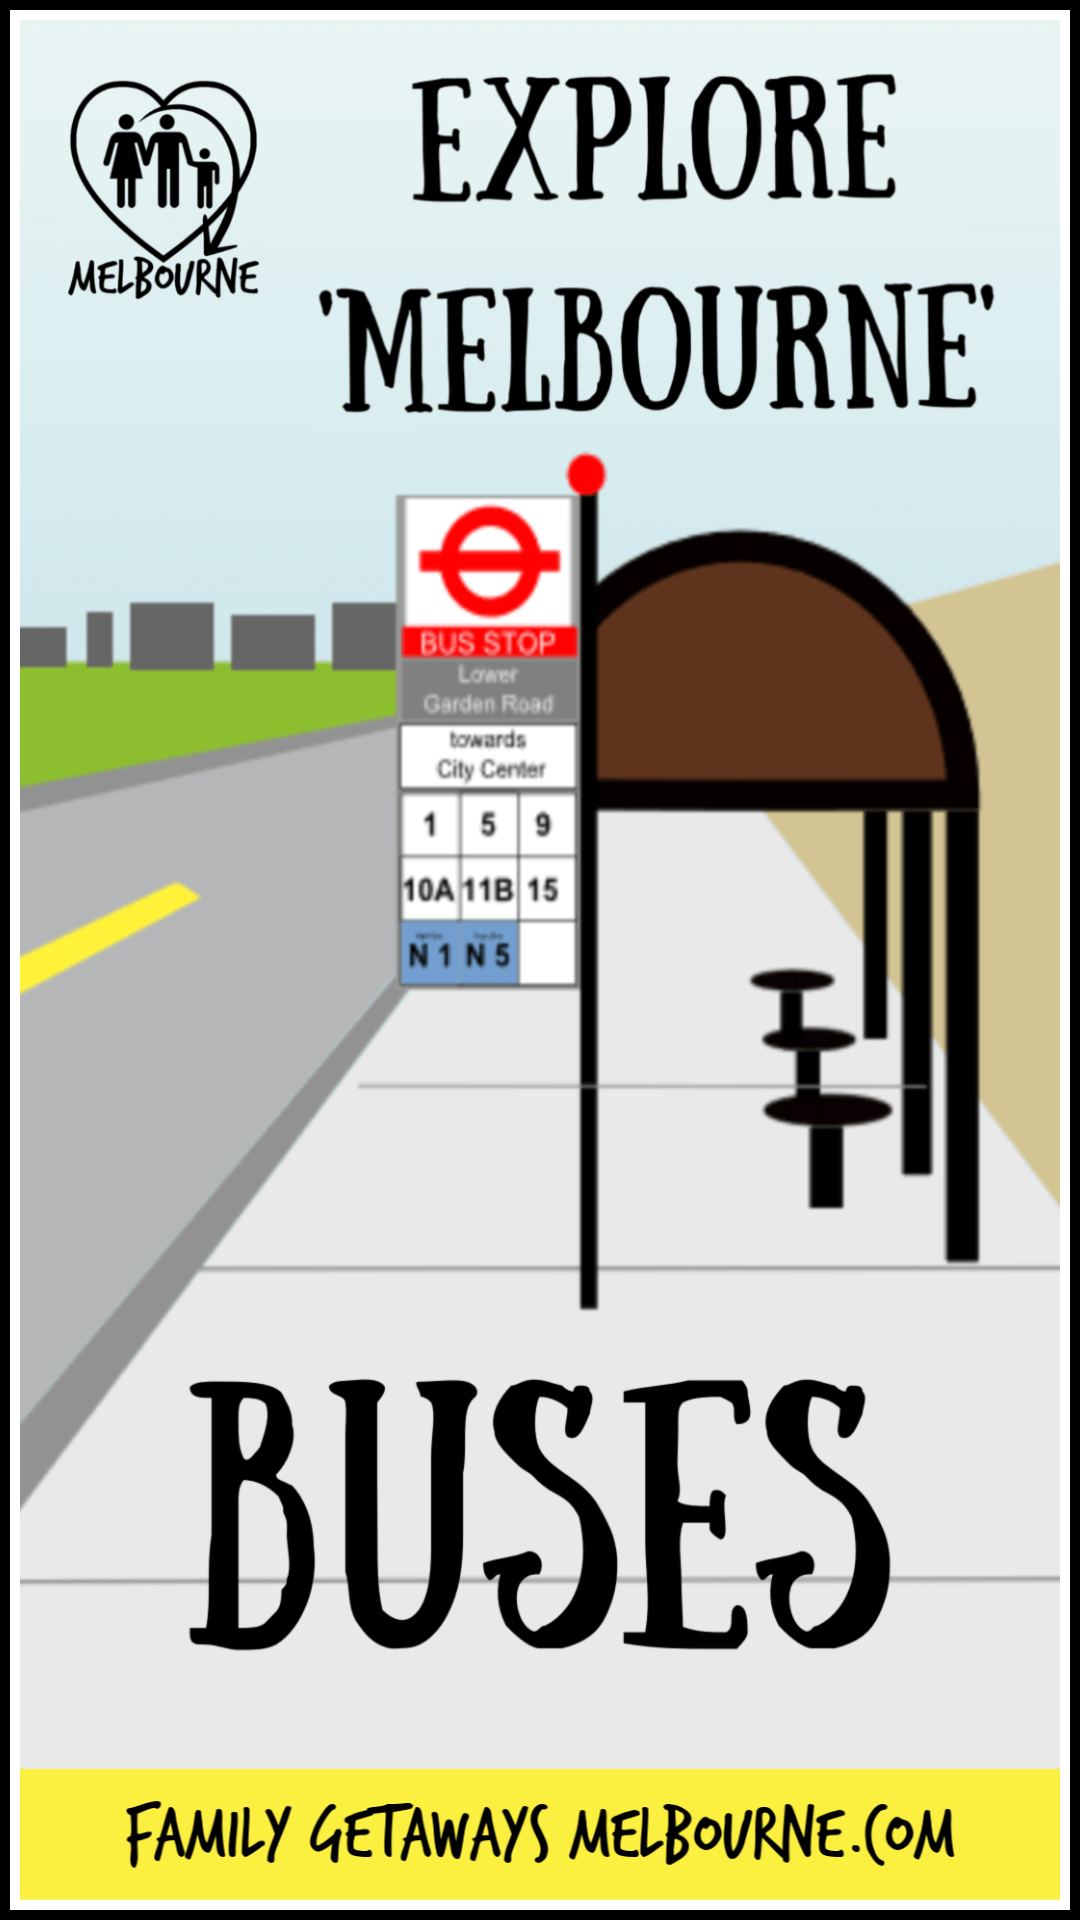 bus transport stop image to pin to Pinterest